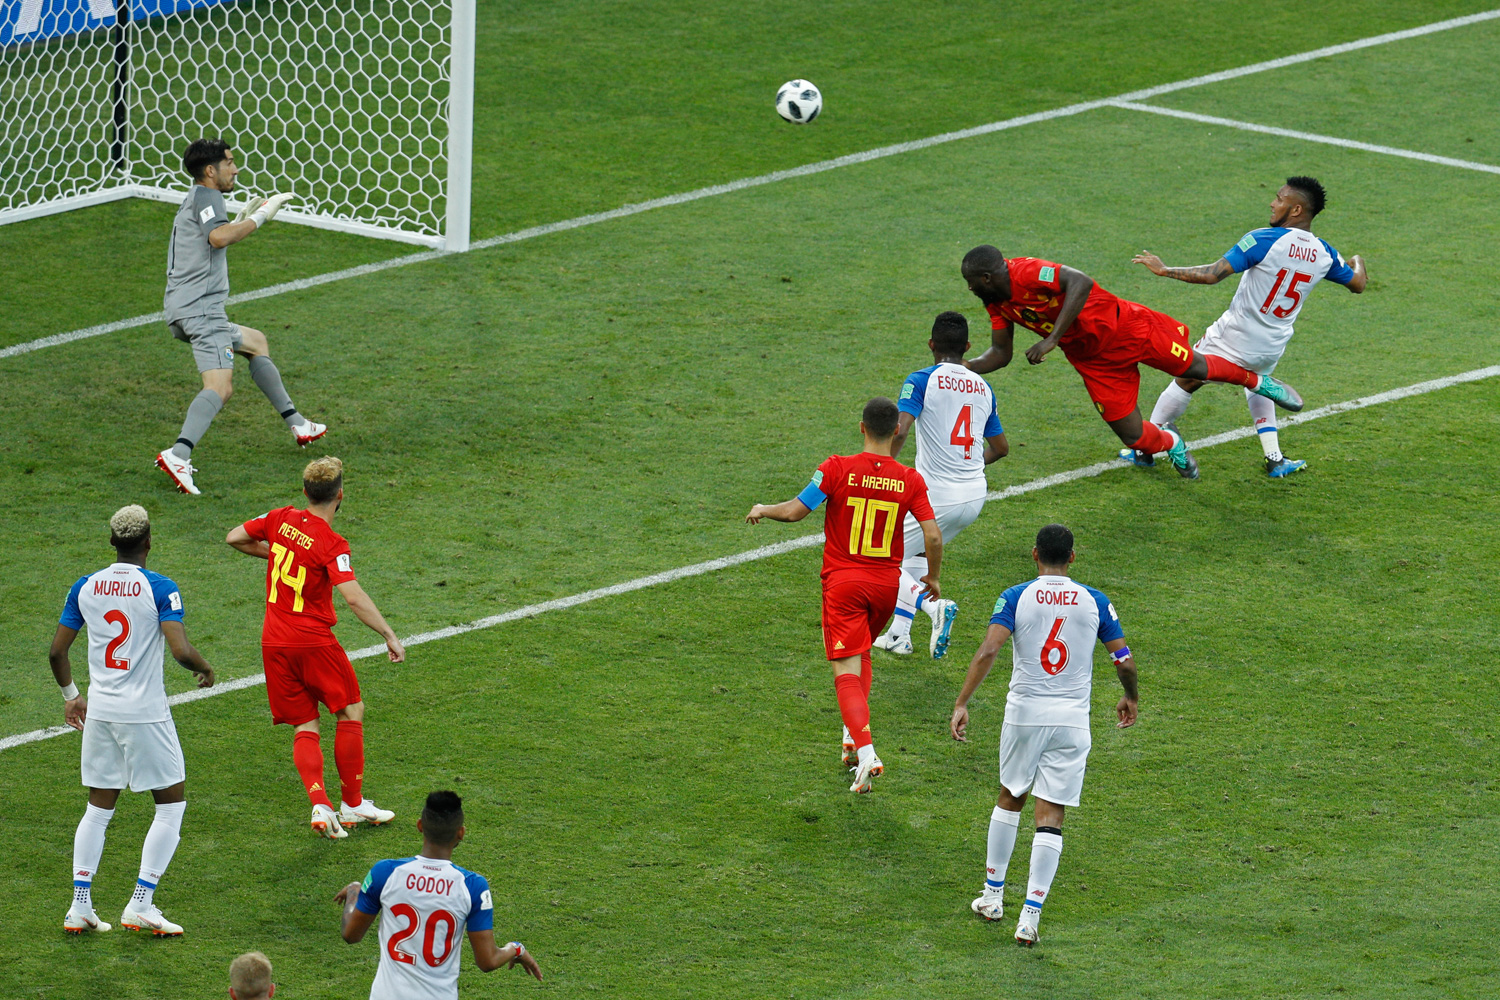 <div class='meta'><div class='origin-logo' data-origin='none'></div><span class='caption-text' data-credit='Victor R. Caivano/AP Photo'>Belgium's Romelu Lukaku, top second right, heads the ball to score his side's second goal during the group G match between Belgium and Panama</span></div>